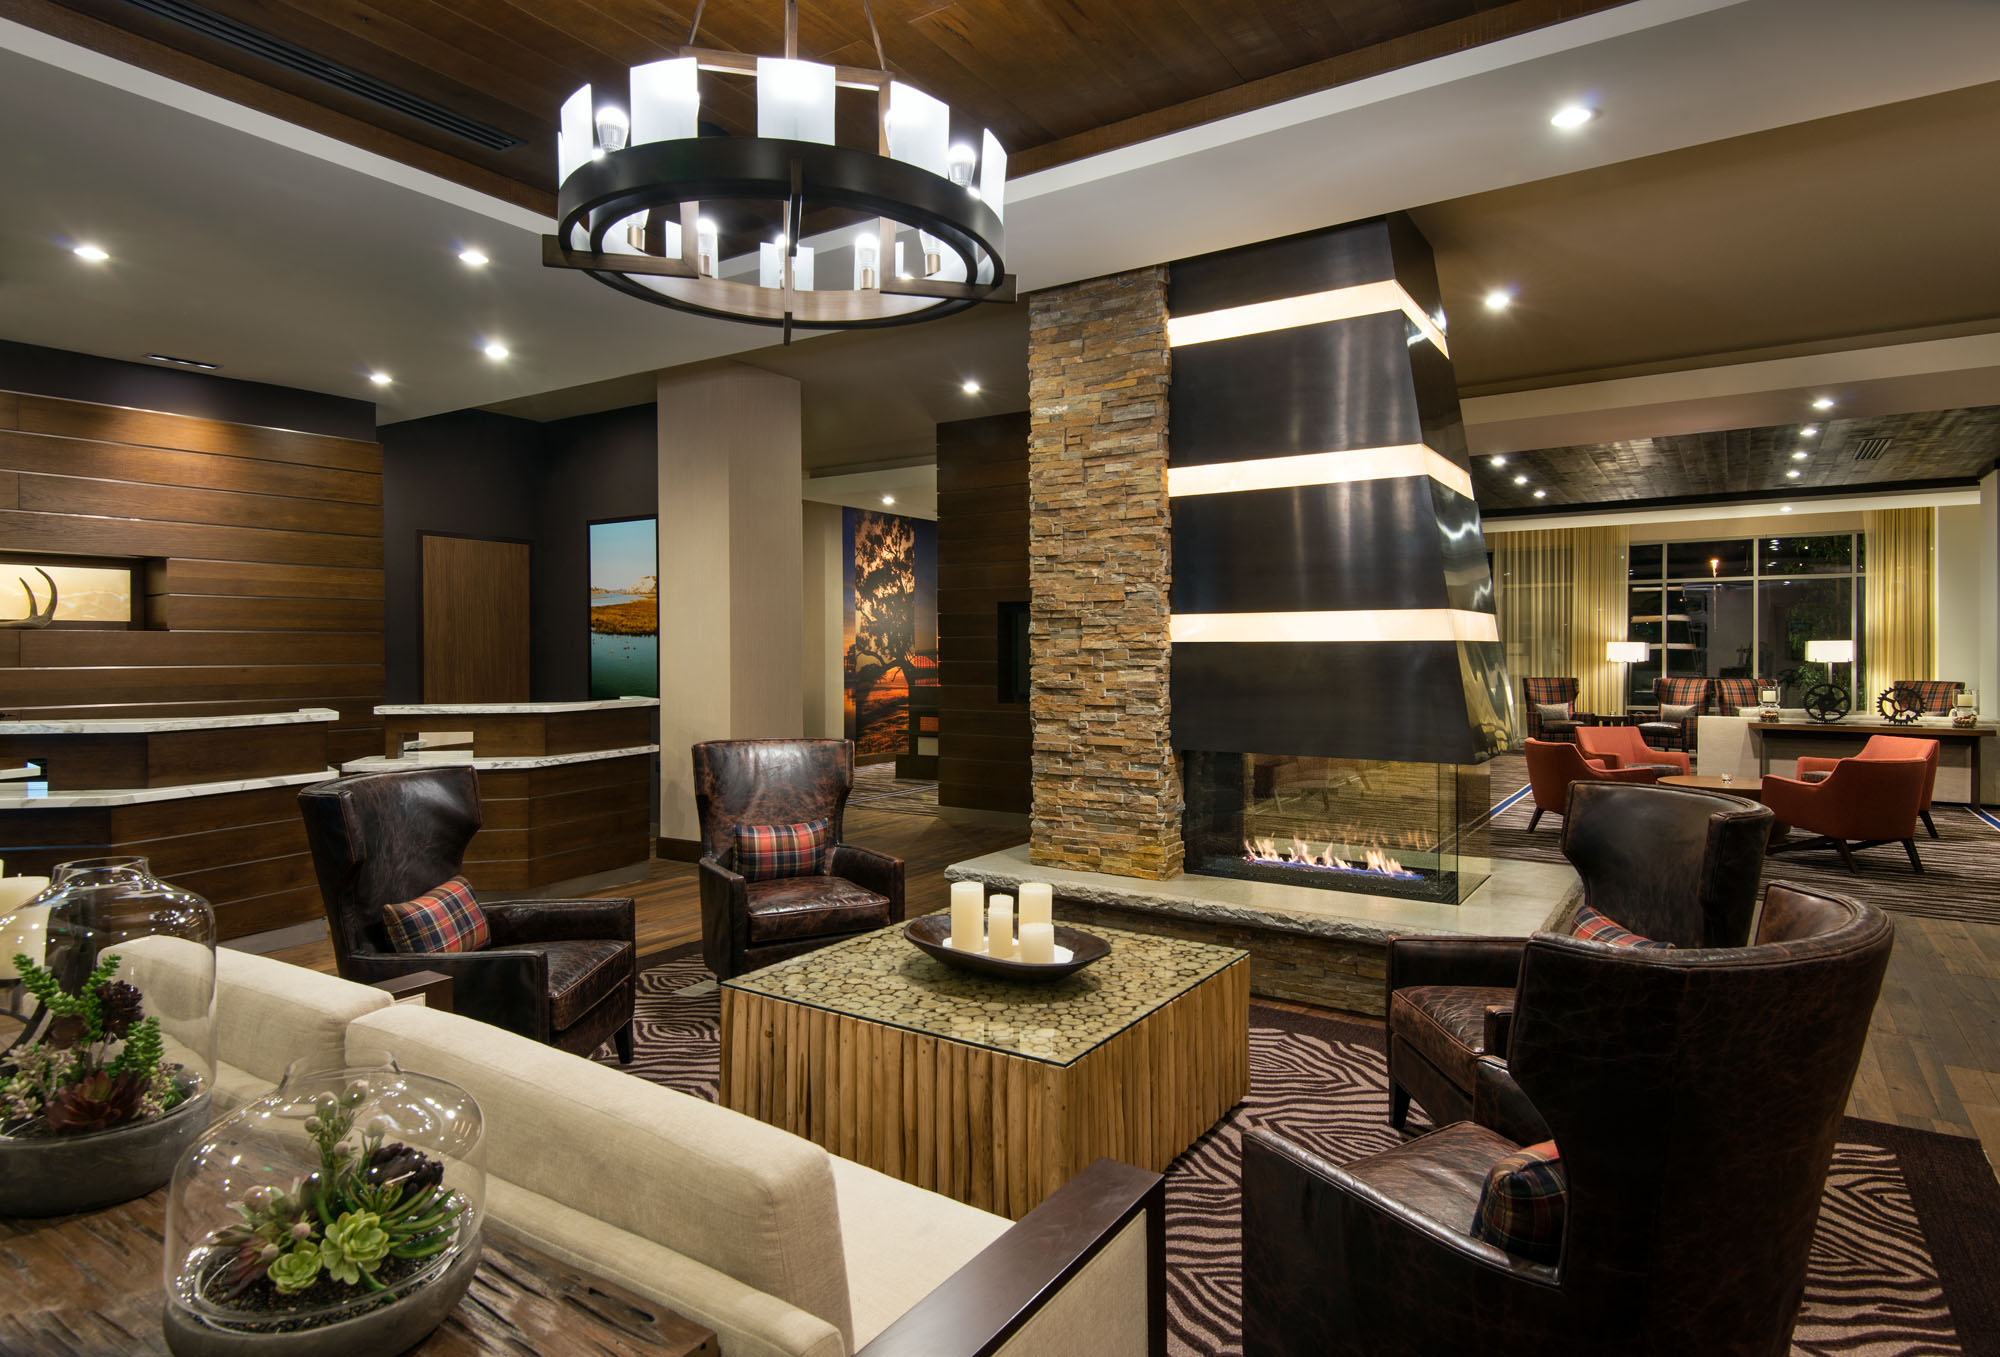 CY Irvine Spectrum 140702_SNASI_Entrance_Seating_Fireplace